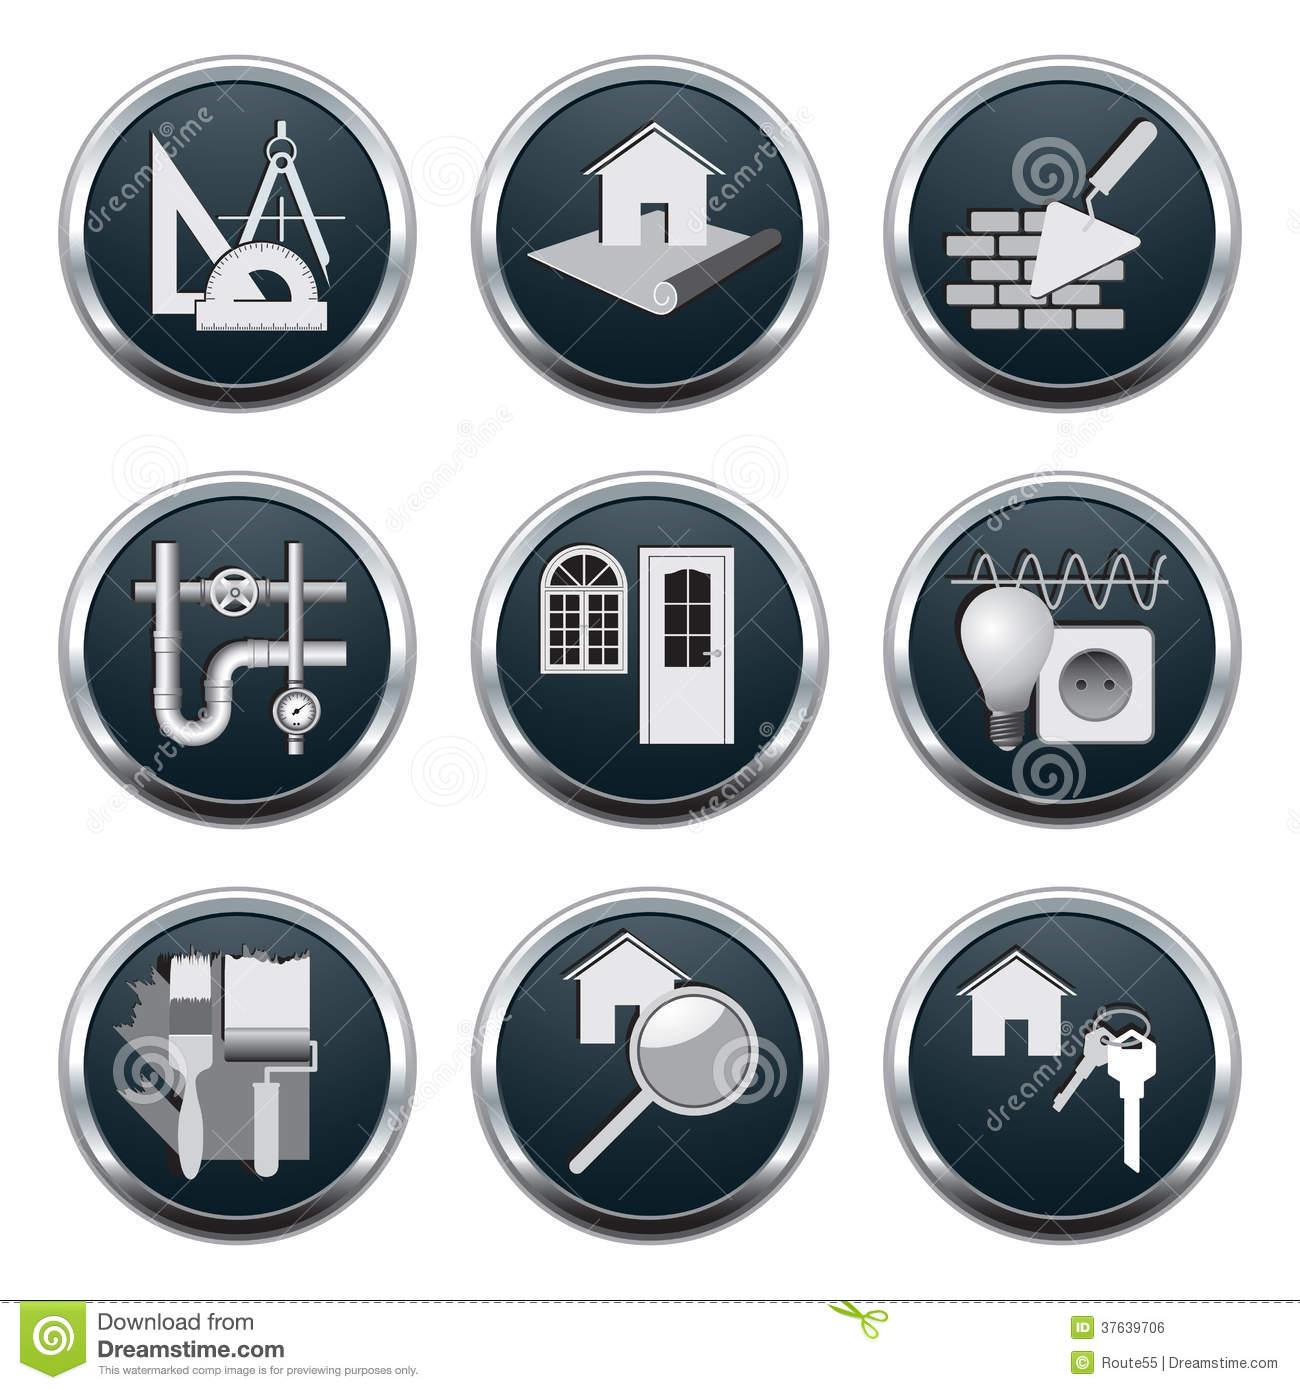 Construction architecture icons royalty free stock image for Architecture icon